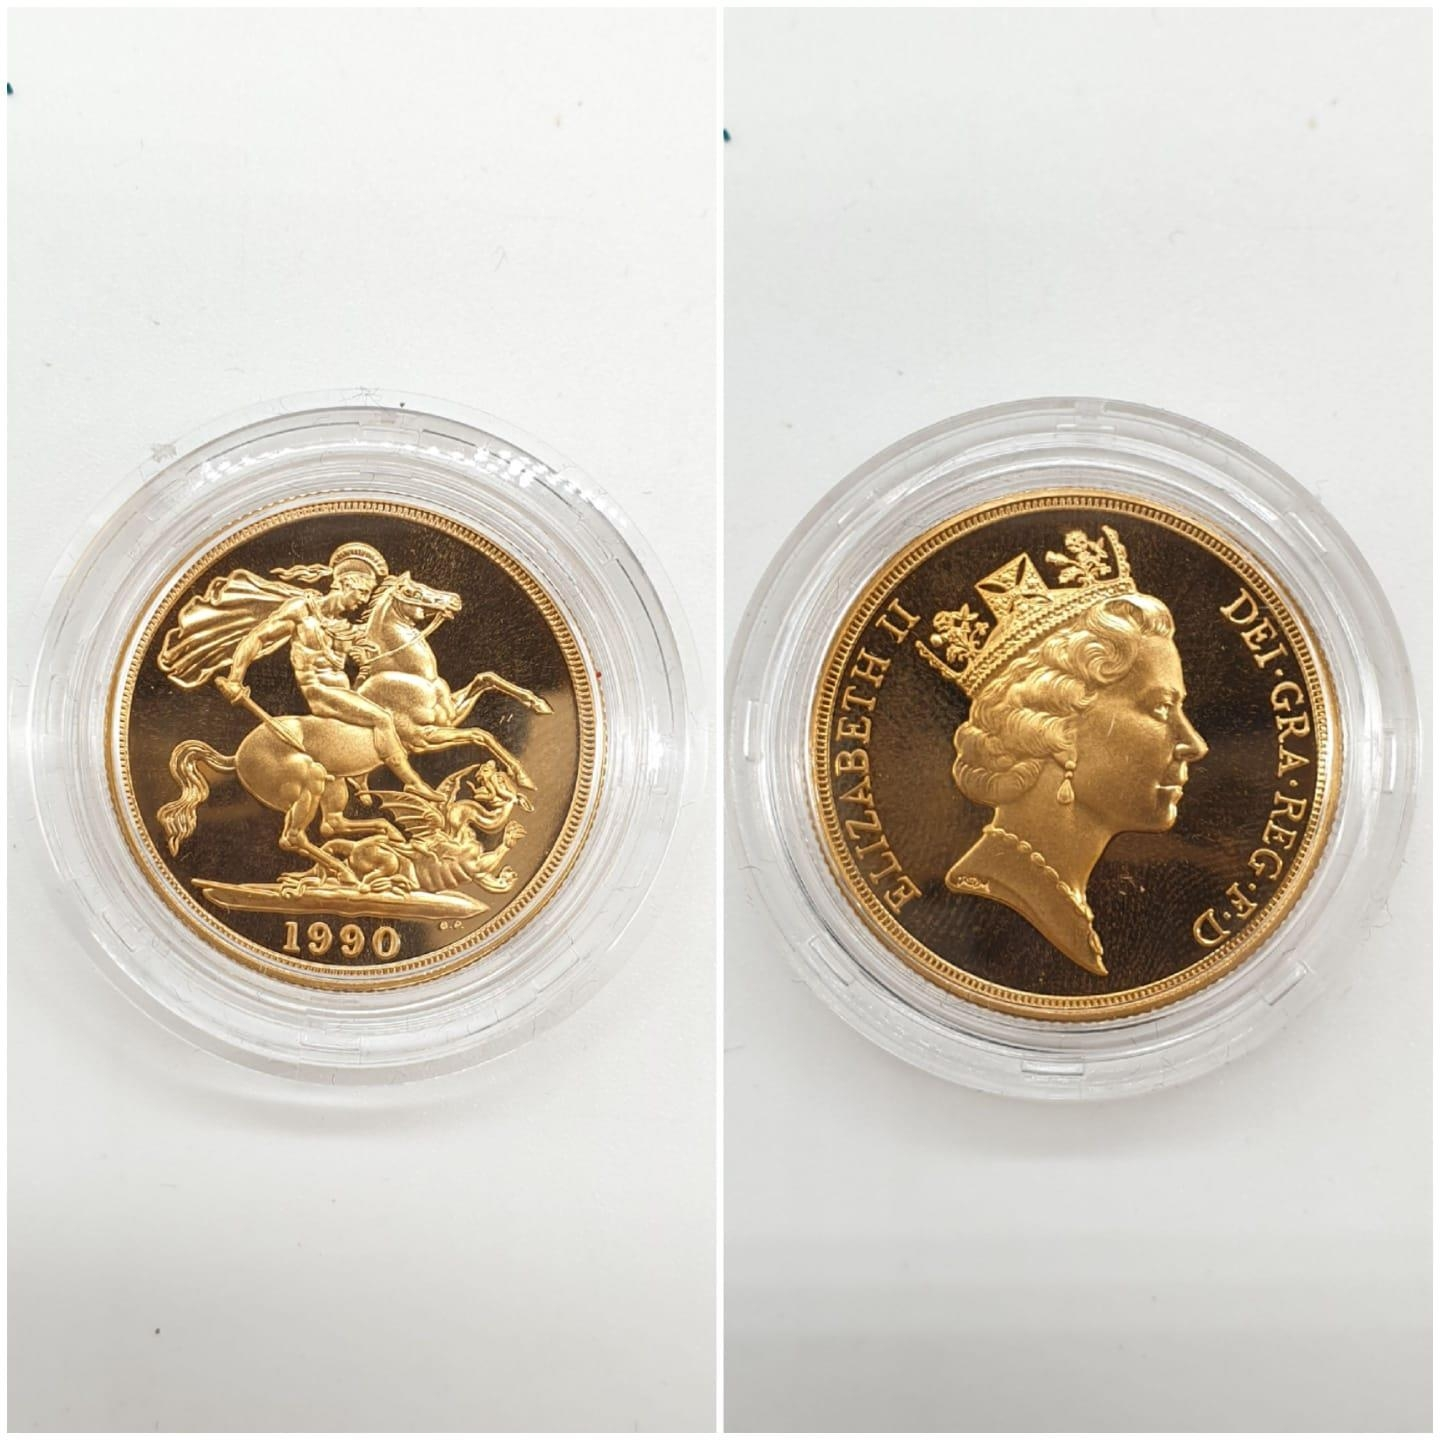 1990 UK GOLD PROOF SOVEREIGN 4 COIN COLLECTION TO INCLUDE A £5 COIN, A DOUBLE SOVEREIGN COIN, A - Image 3 of 5